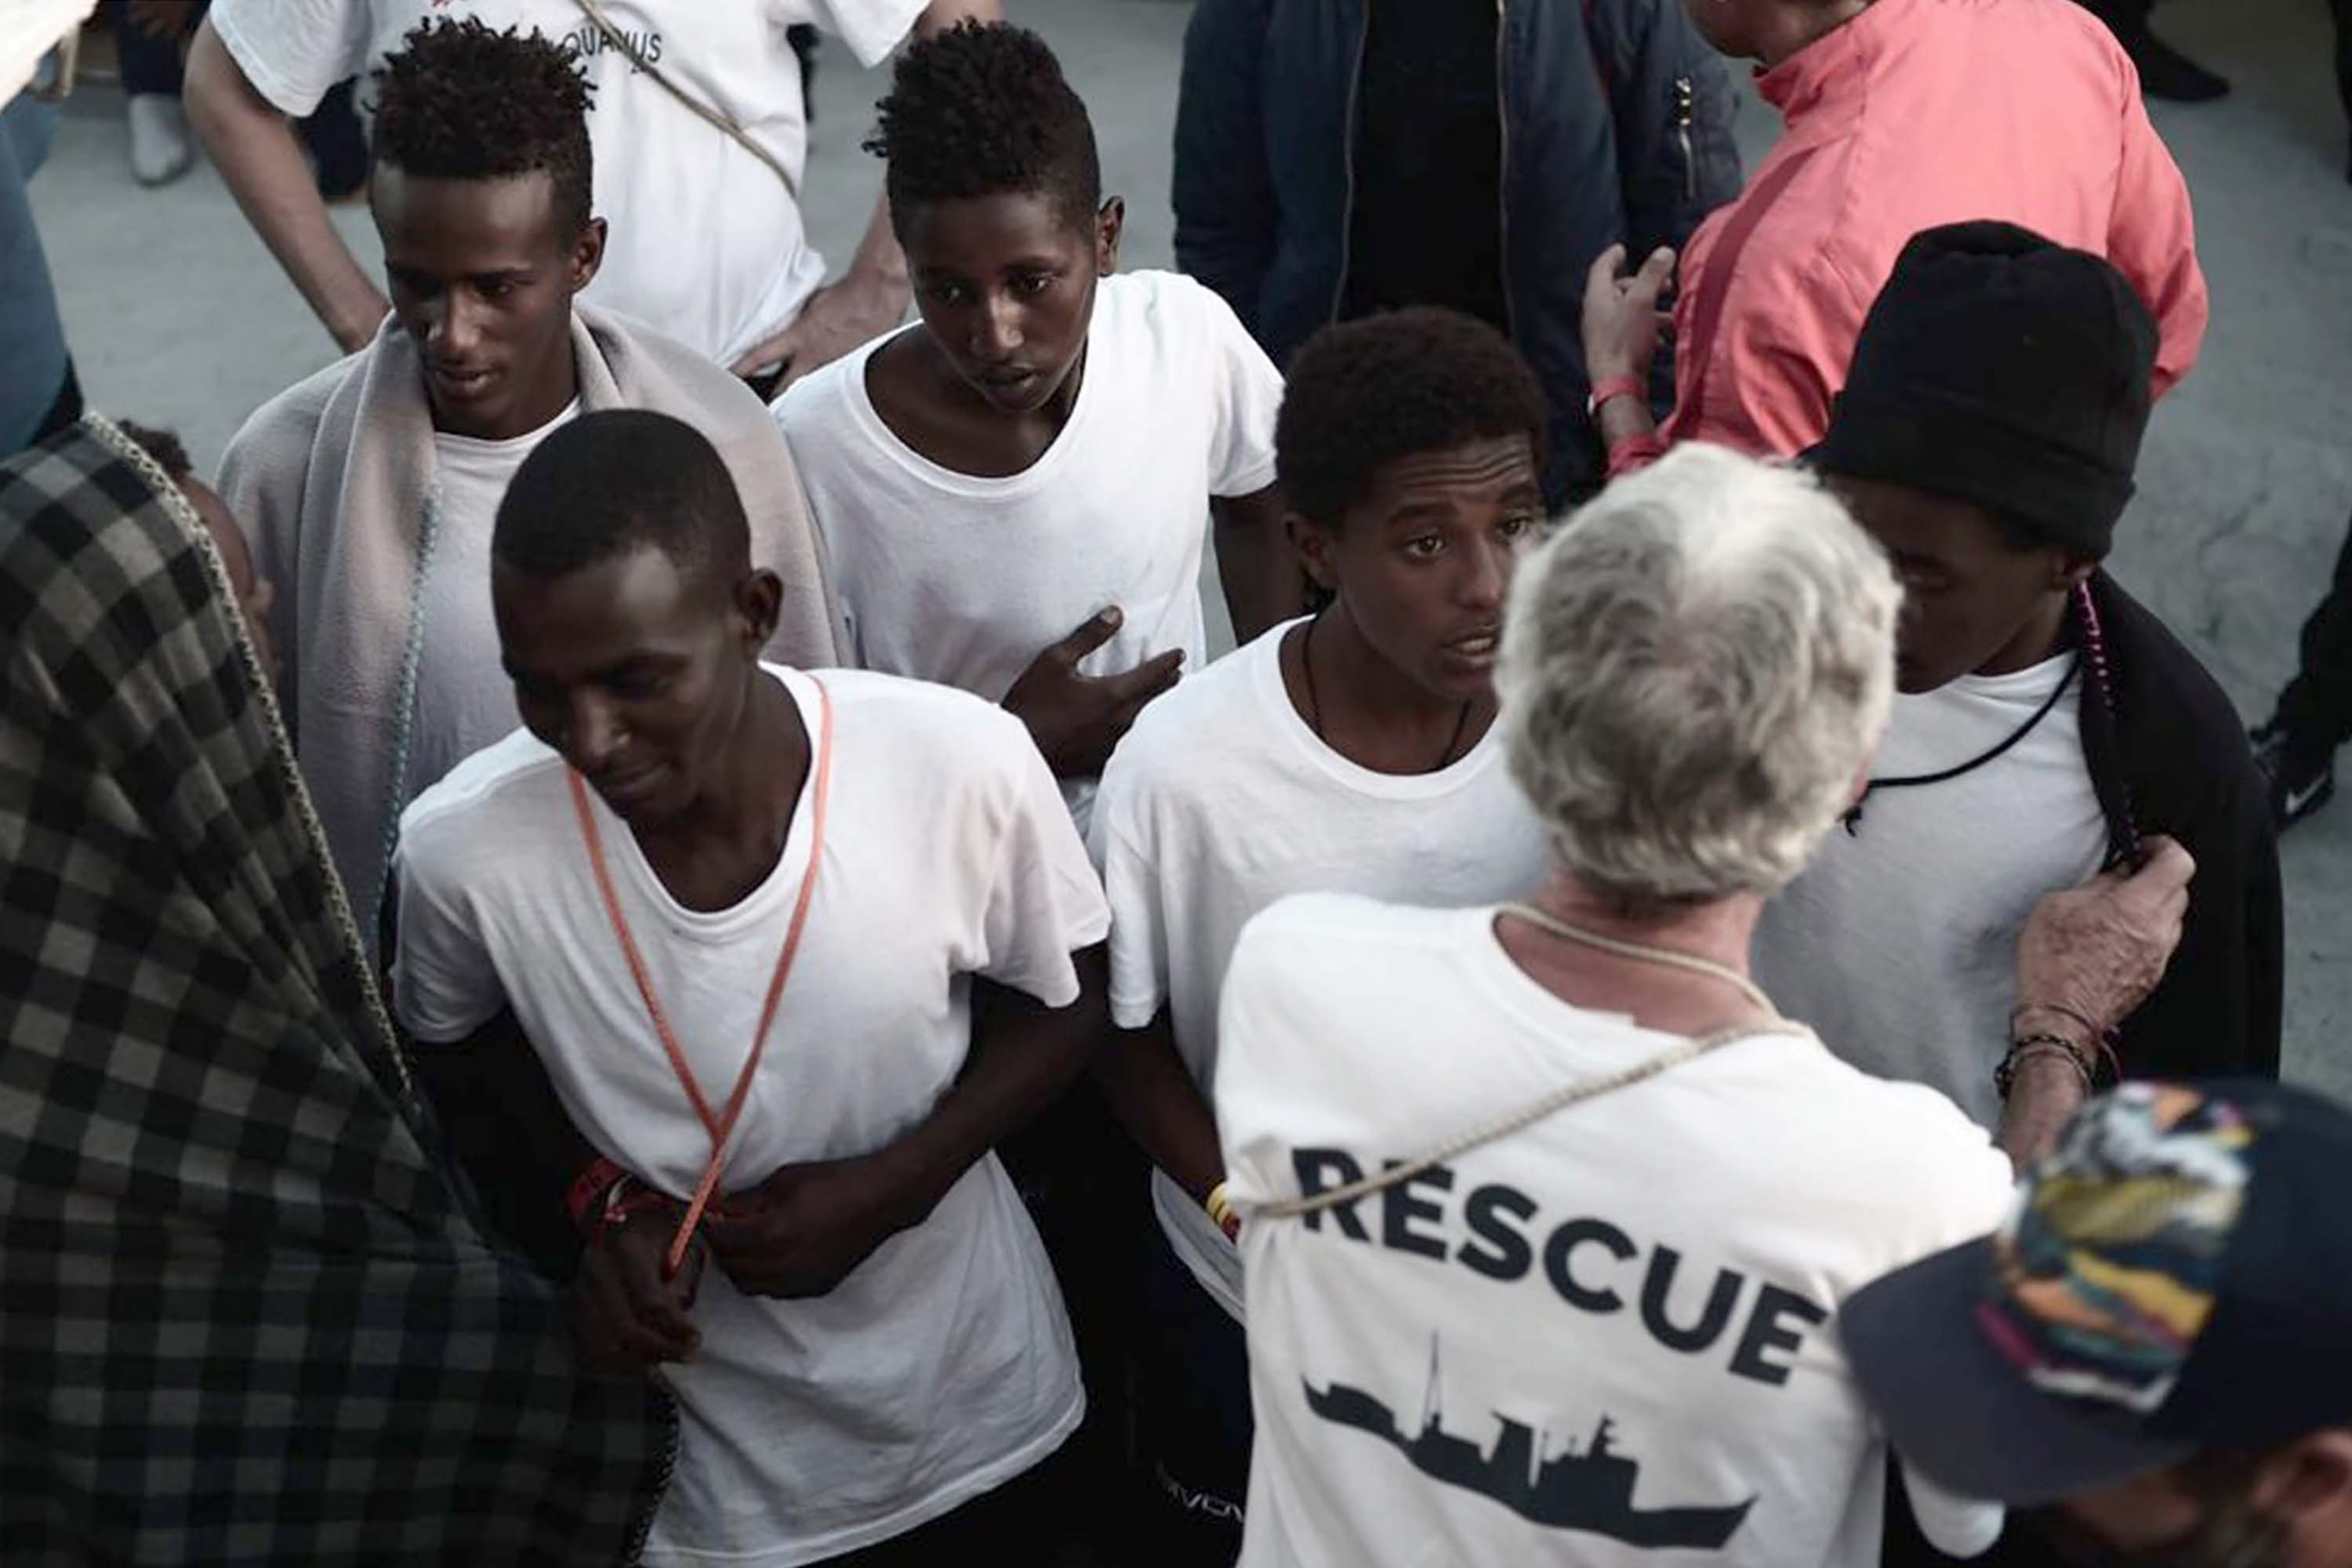 Among the migrants on board are 123 unaccompanied minors and six pregnant women.